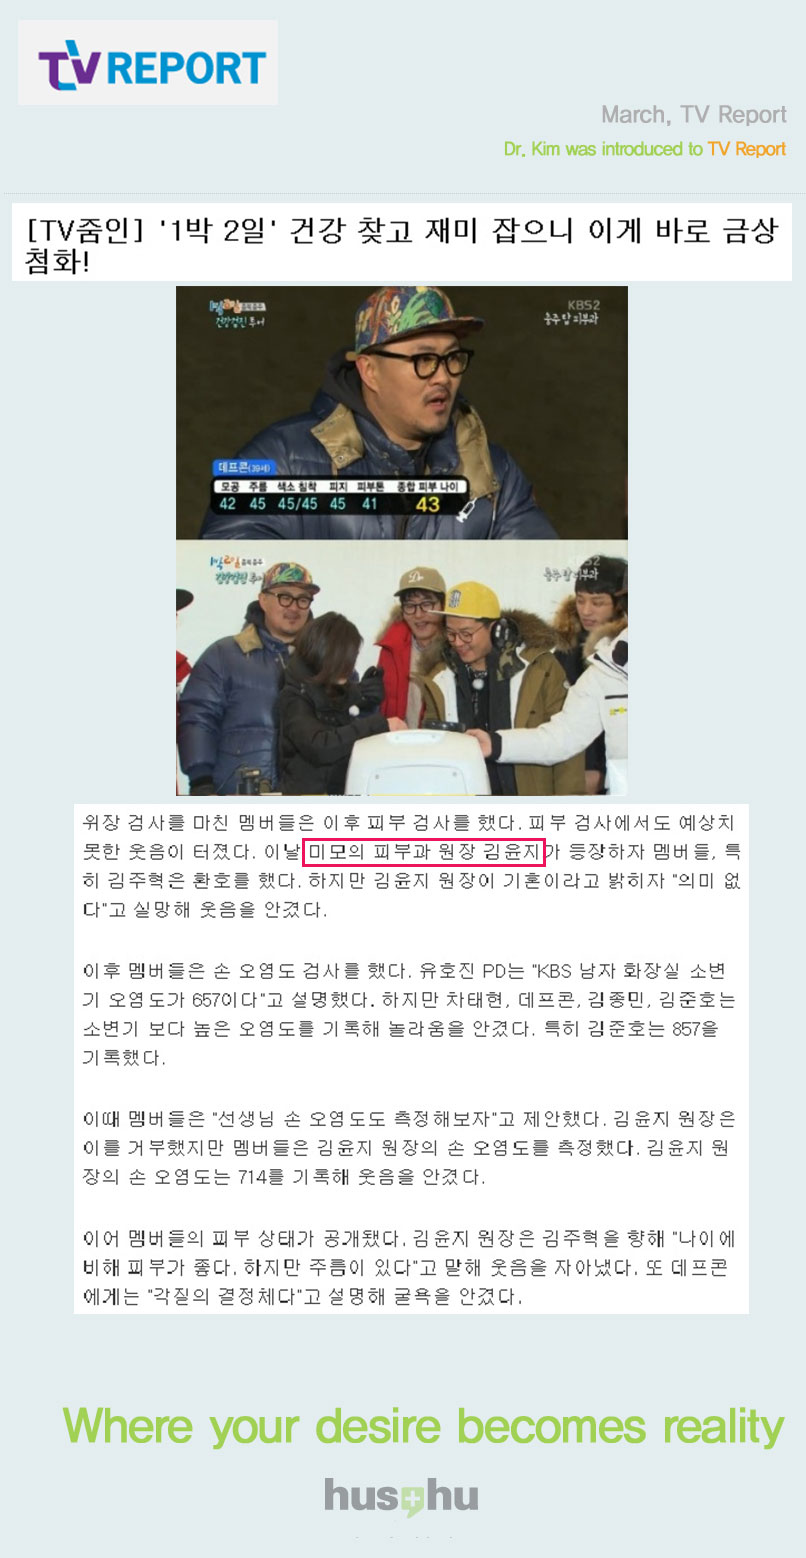 Dr. Kim in TV REPORT